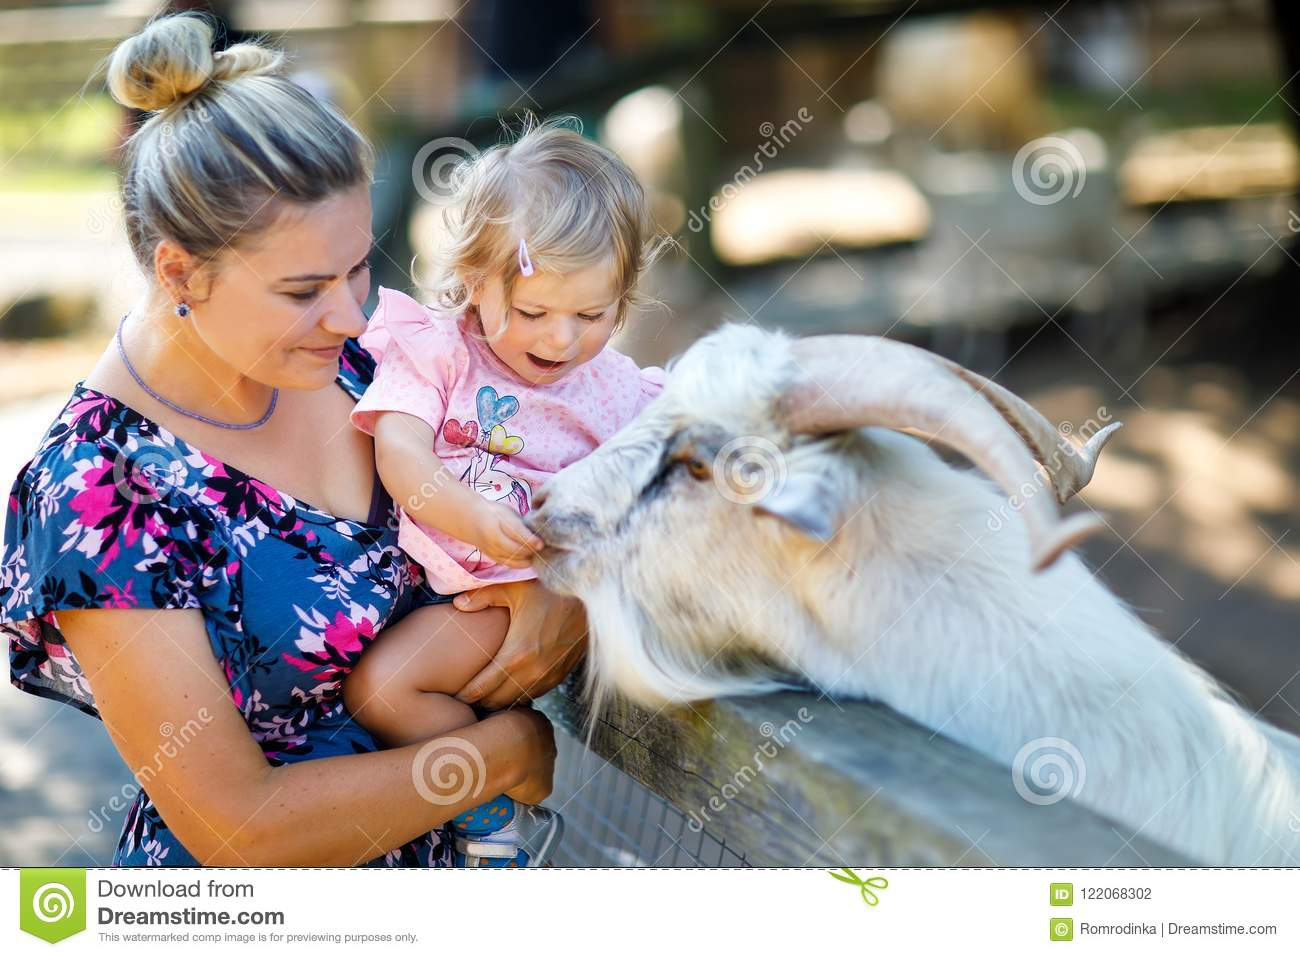 Adorable cute toddler girl and young mother feeding little goats and sheeps on a kids farm. Beautiful baby child petting